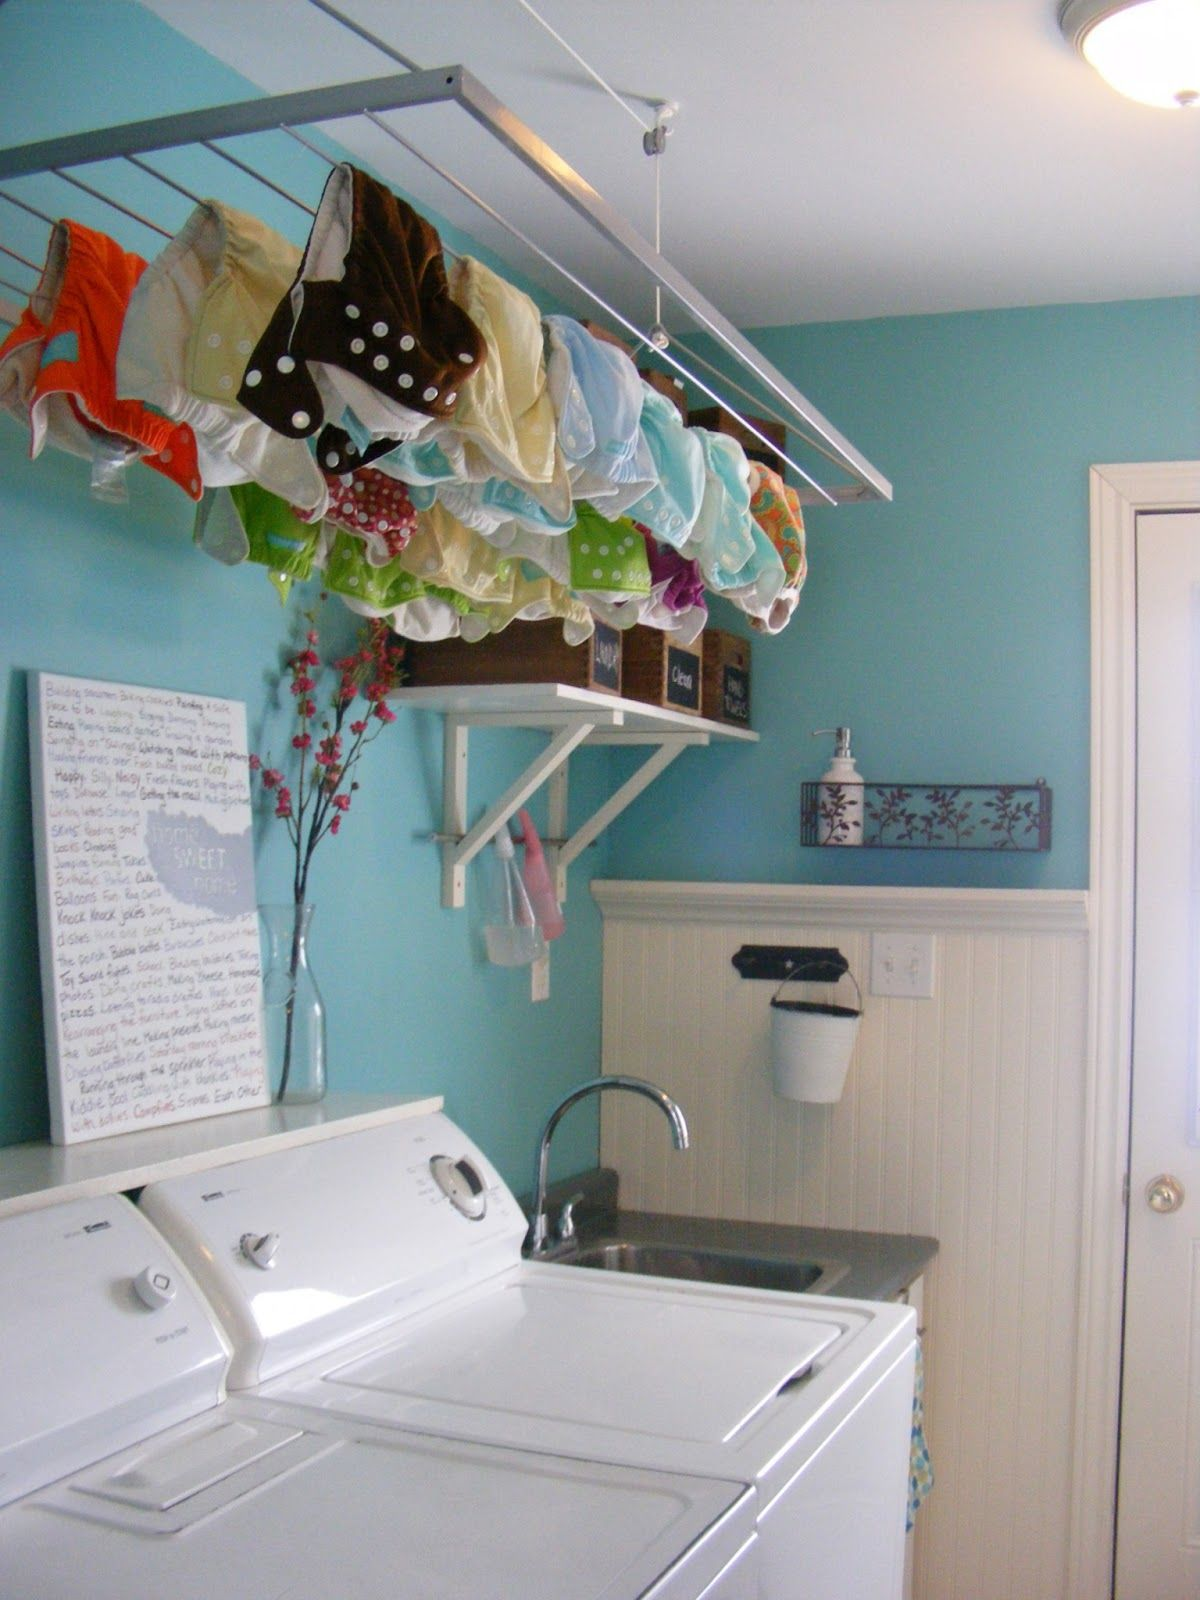 Replace Your Dryer With An Indoor Drying Rack On A Pulley